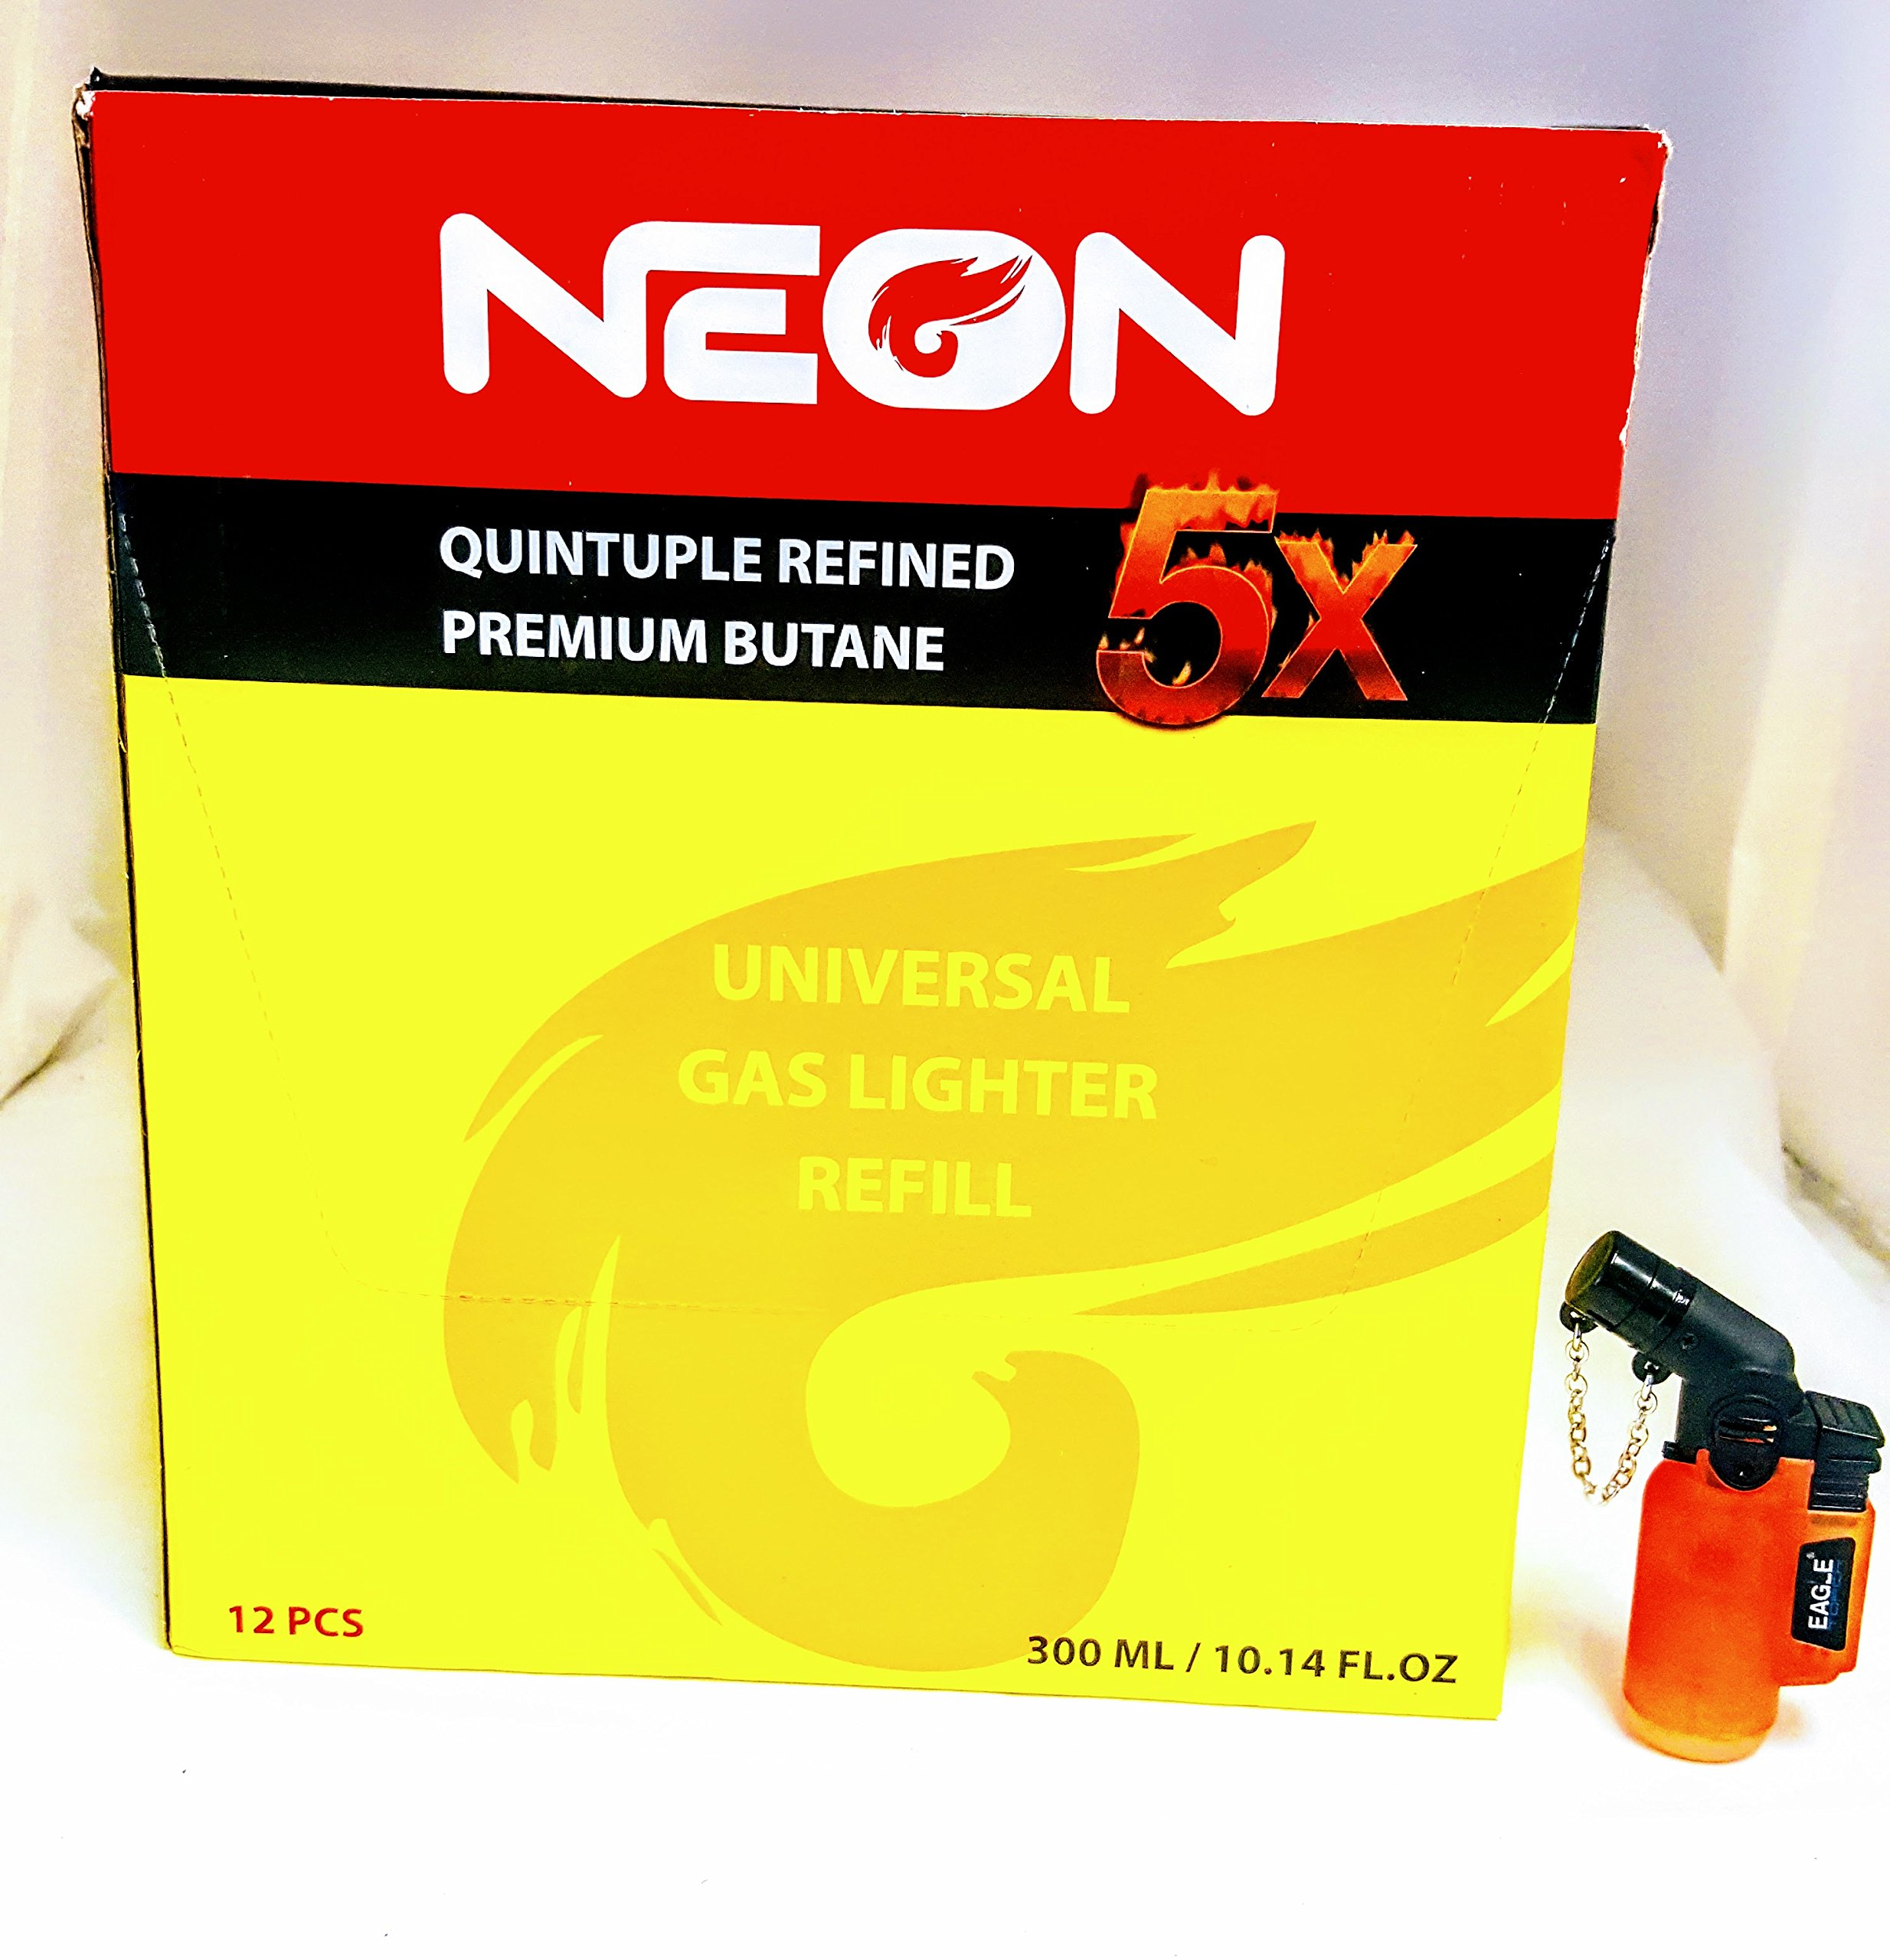 12 Cans of Neon 5x Ultra Refined Butane Fuel FREE eagle angle lighter